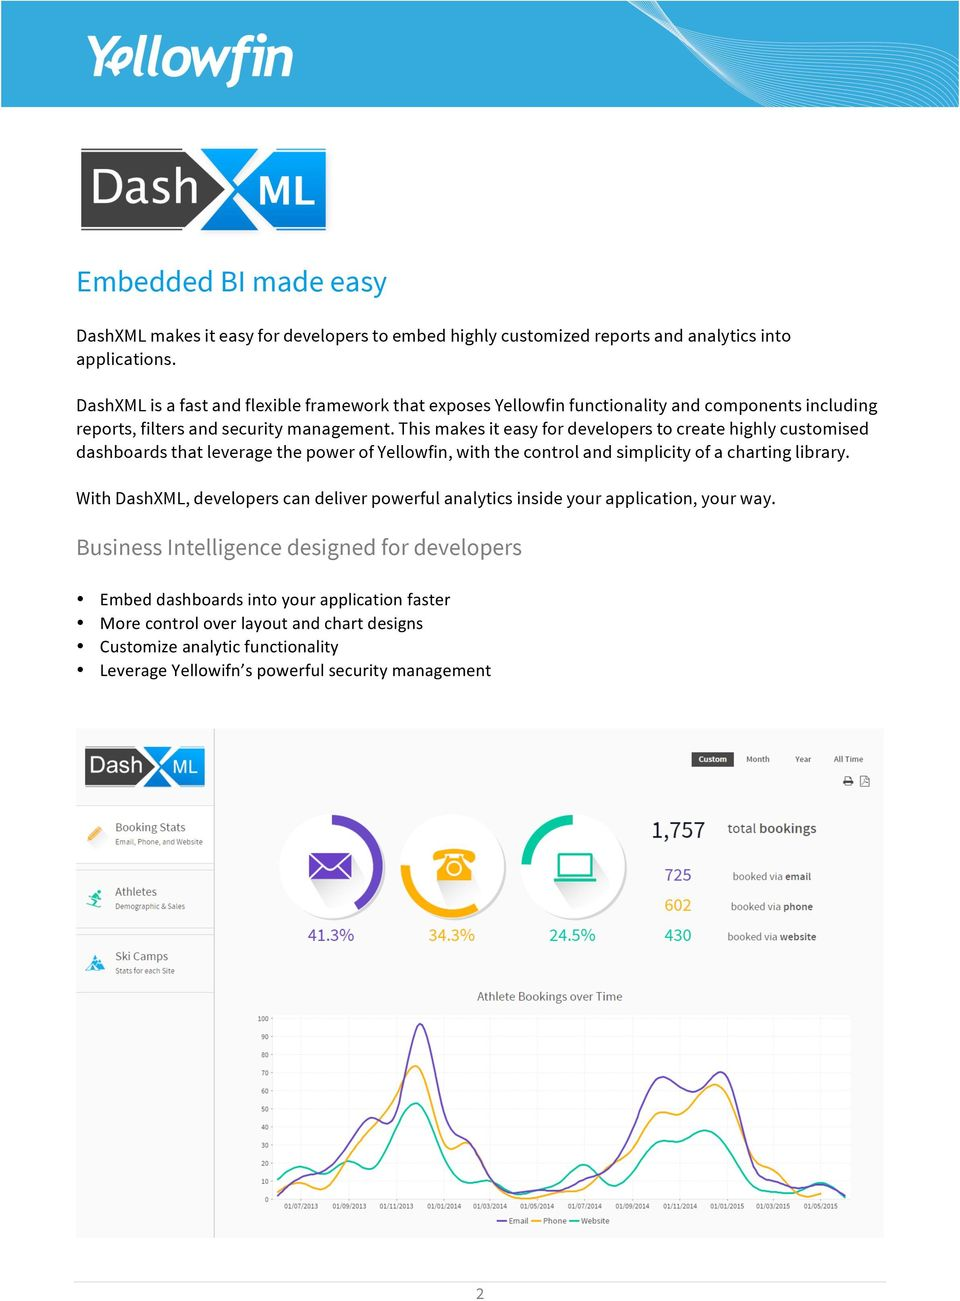 This makes it easy for developers to create highly customised dashboards that leverage the power of Yellowfin, with the control and simplicity of a charting library.